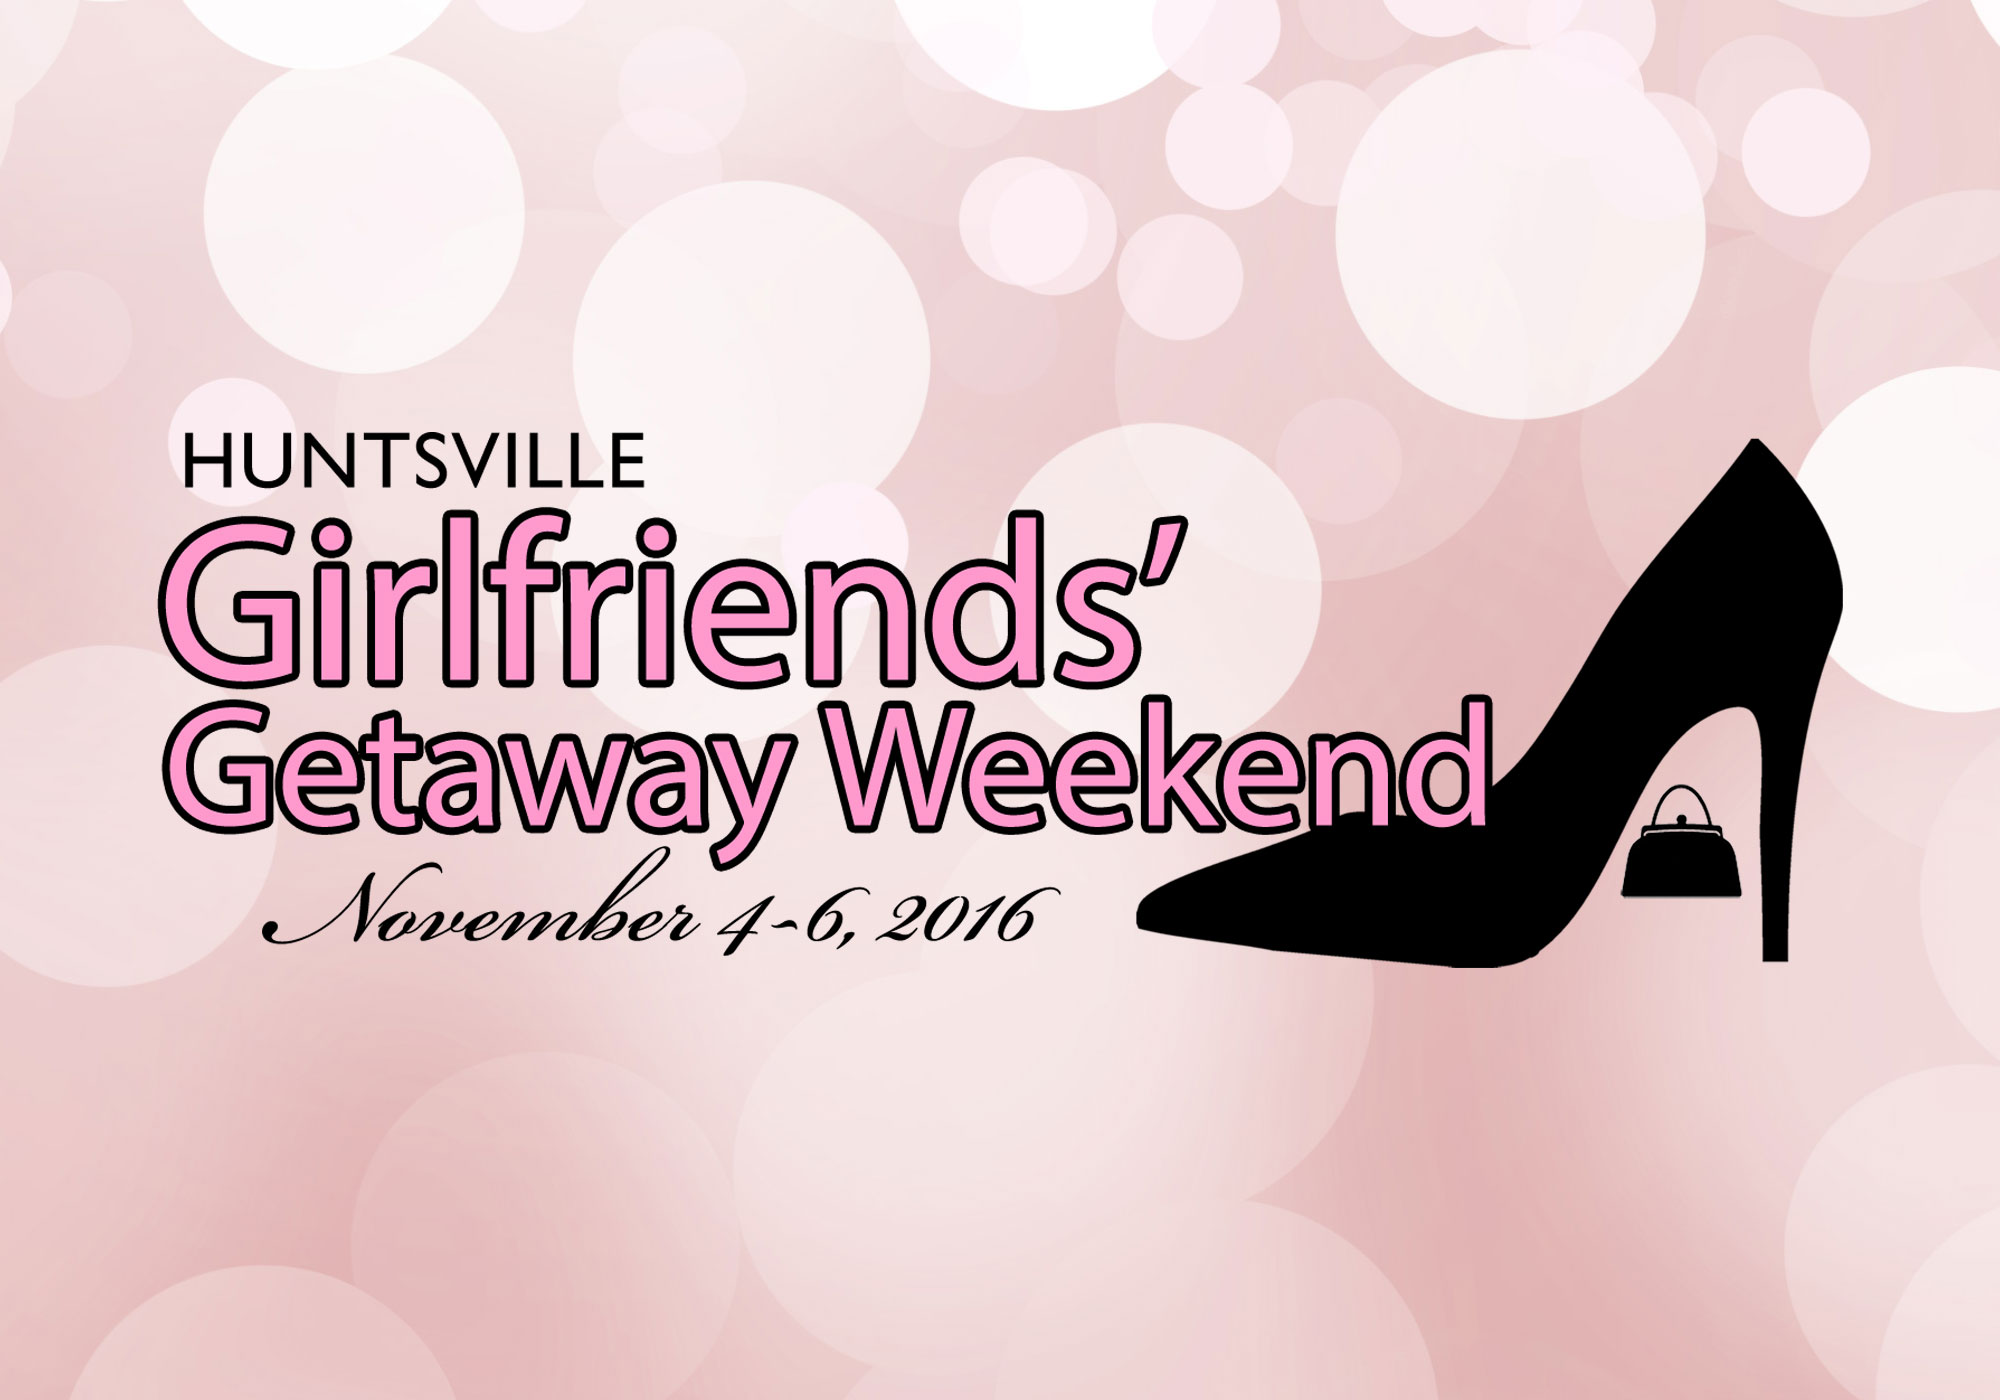 Girlfriends' Getaway Weekend – Nov. 4-6, 2016